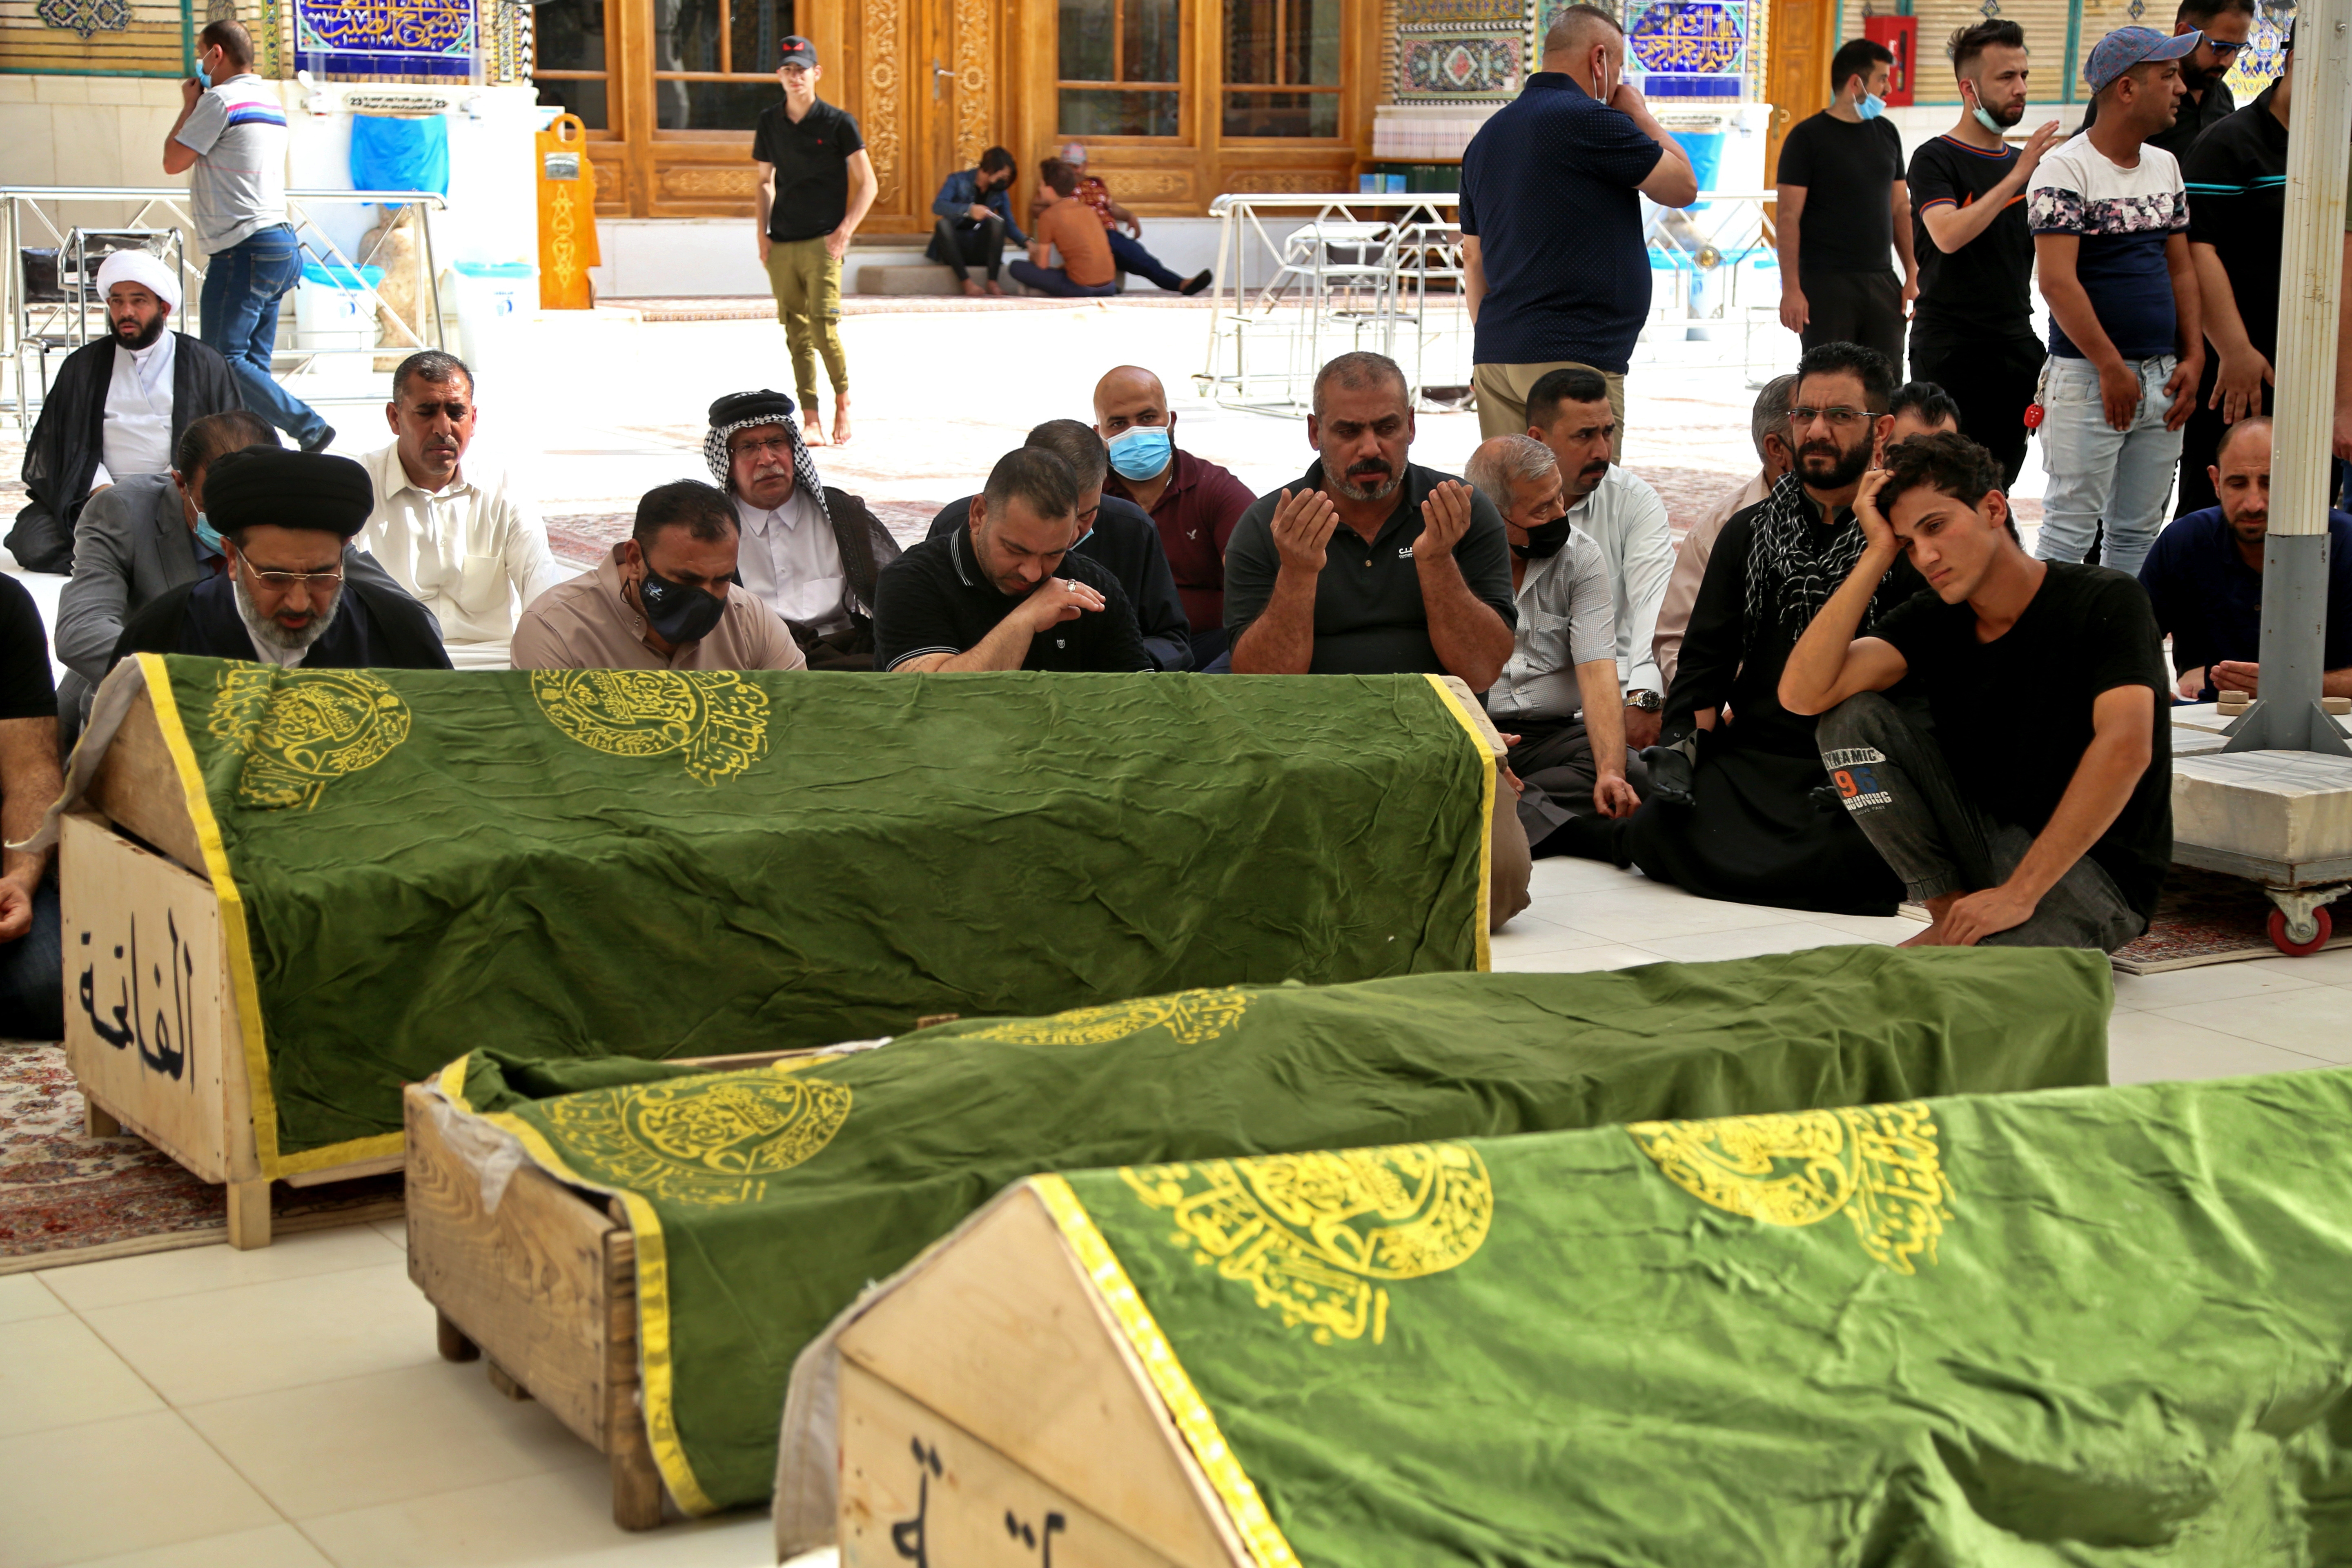 Mourners pray near the coffins of coronavirus patients who were killed in a hospital fire, during their funeral at the Imam Ali shrine in Najaf, Iraq, on April 25, 2021.